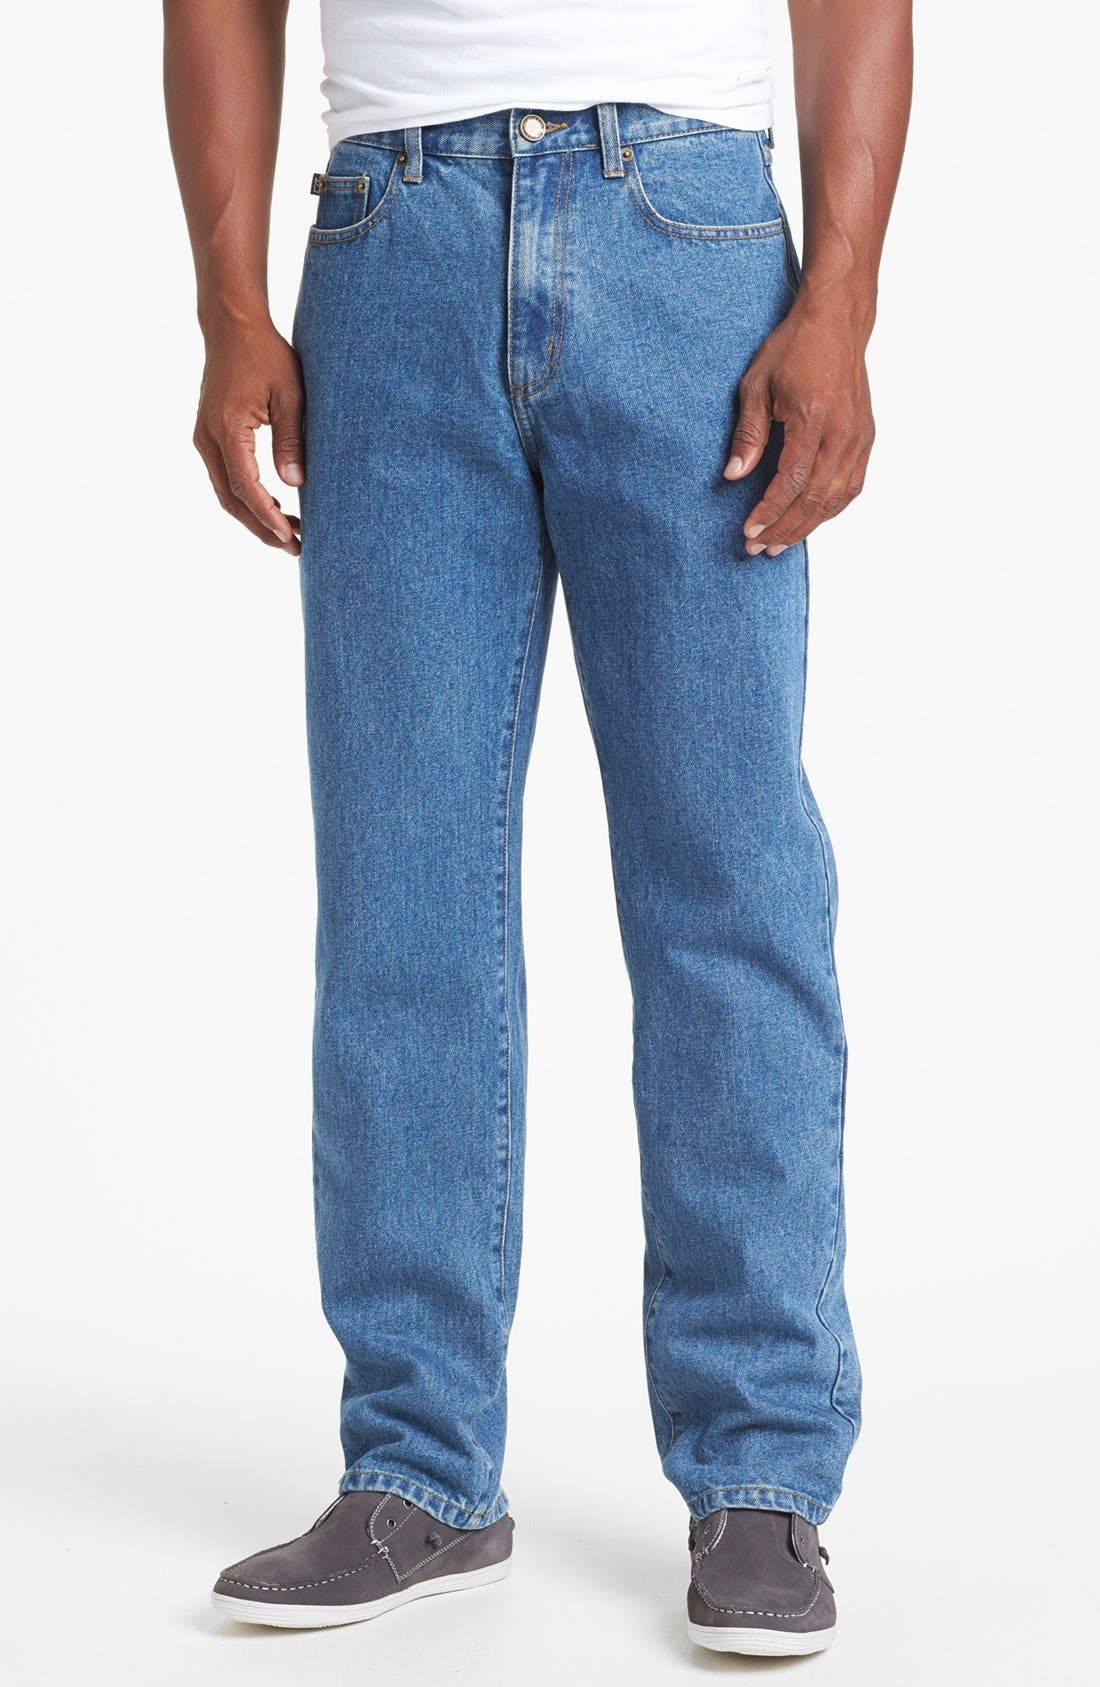 Alternate Image 1 Selected - Cutter & Buck Five-Pocket Relaxed Fit Jeans (Big & Tall)